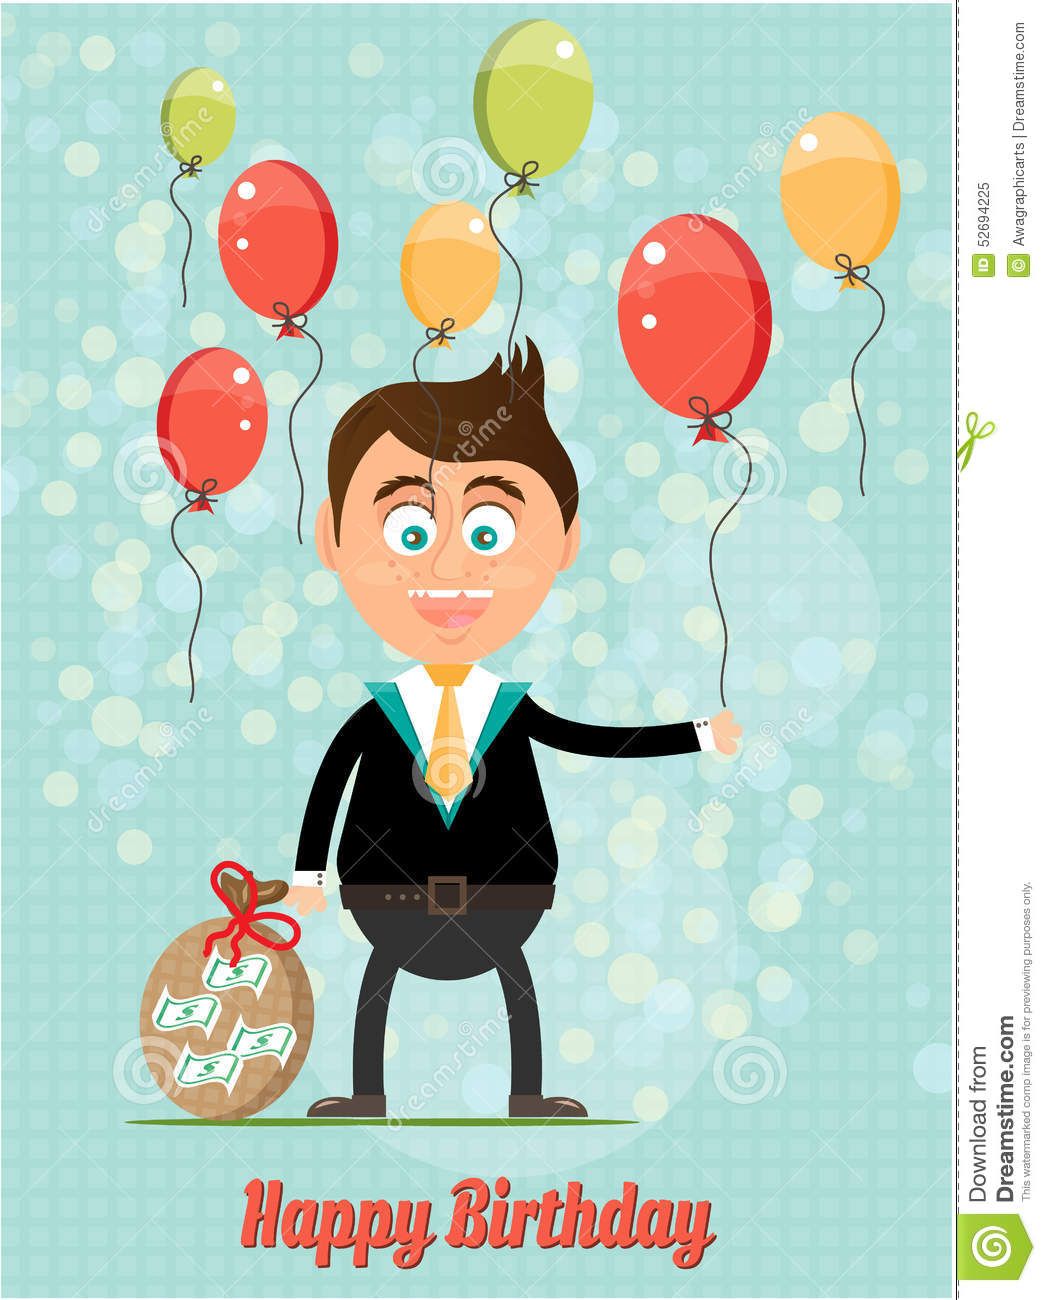 Birthday Card With Smiling Man Money Colorful Flying Balloons Text Happy Blue Background Pattern And Lights